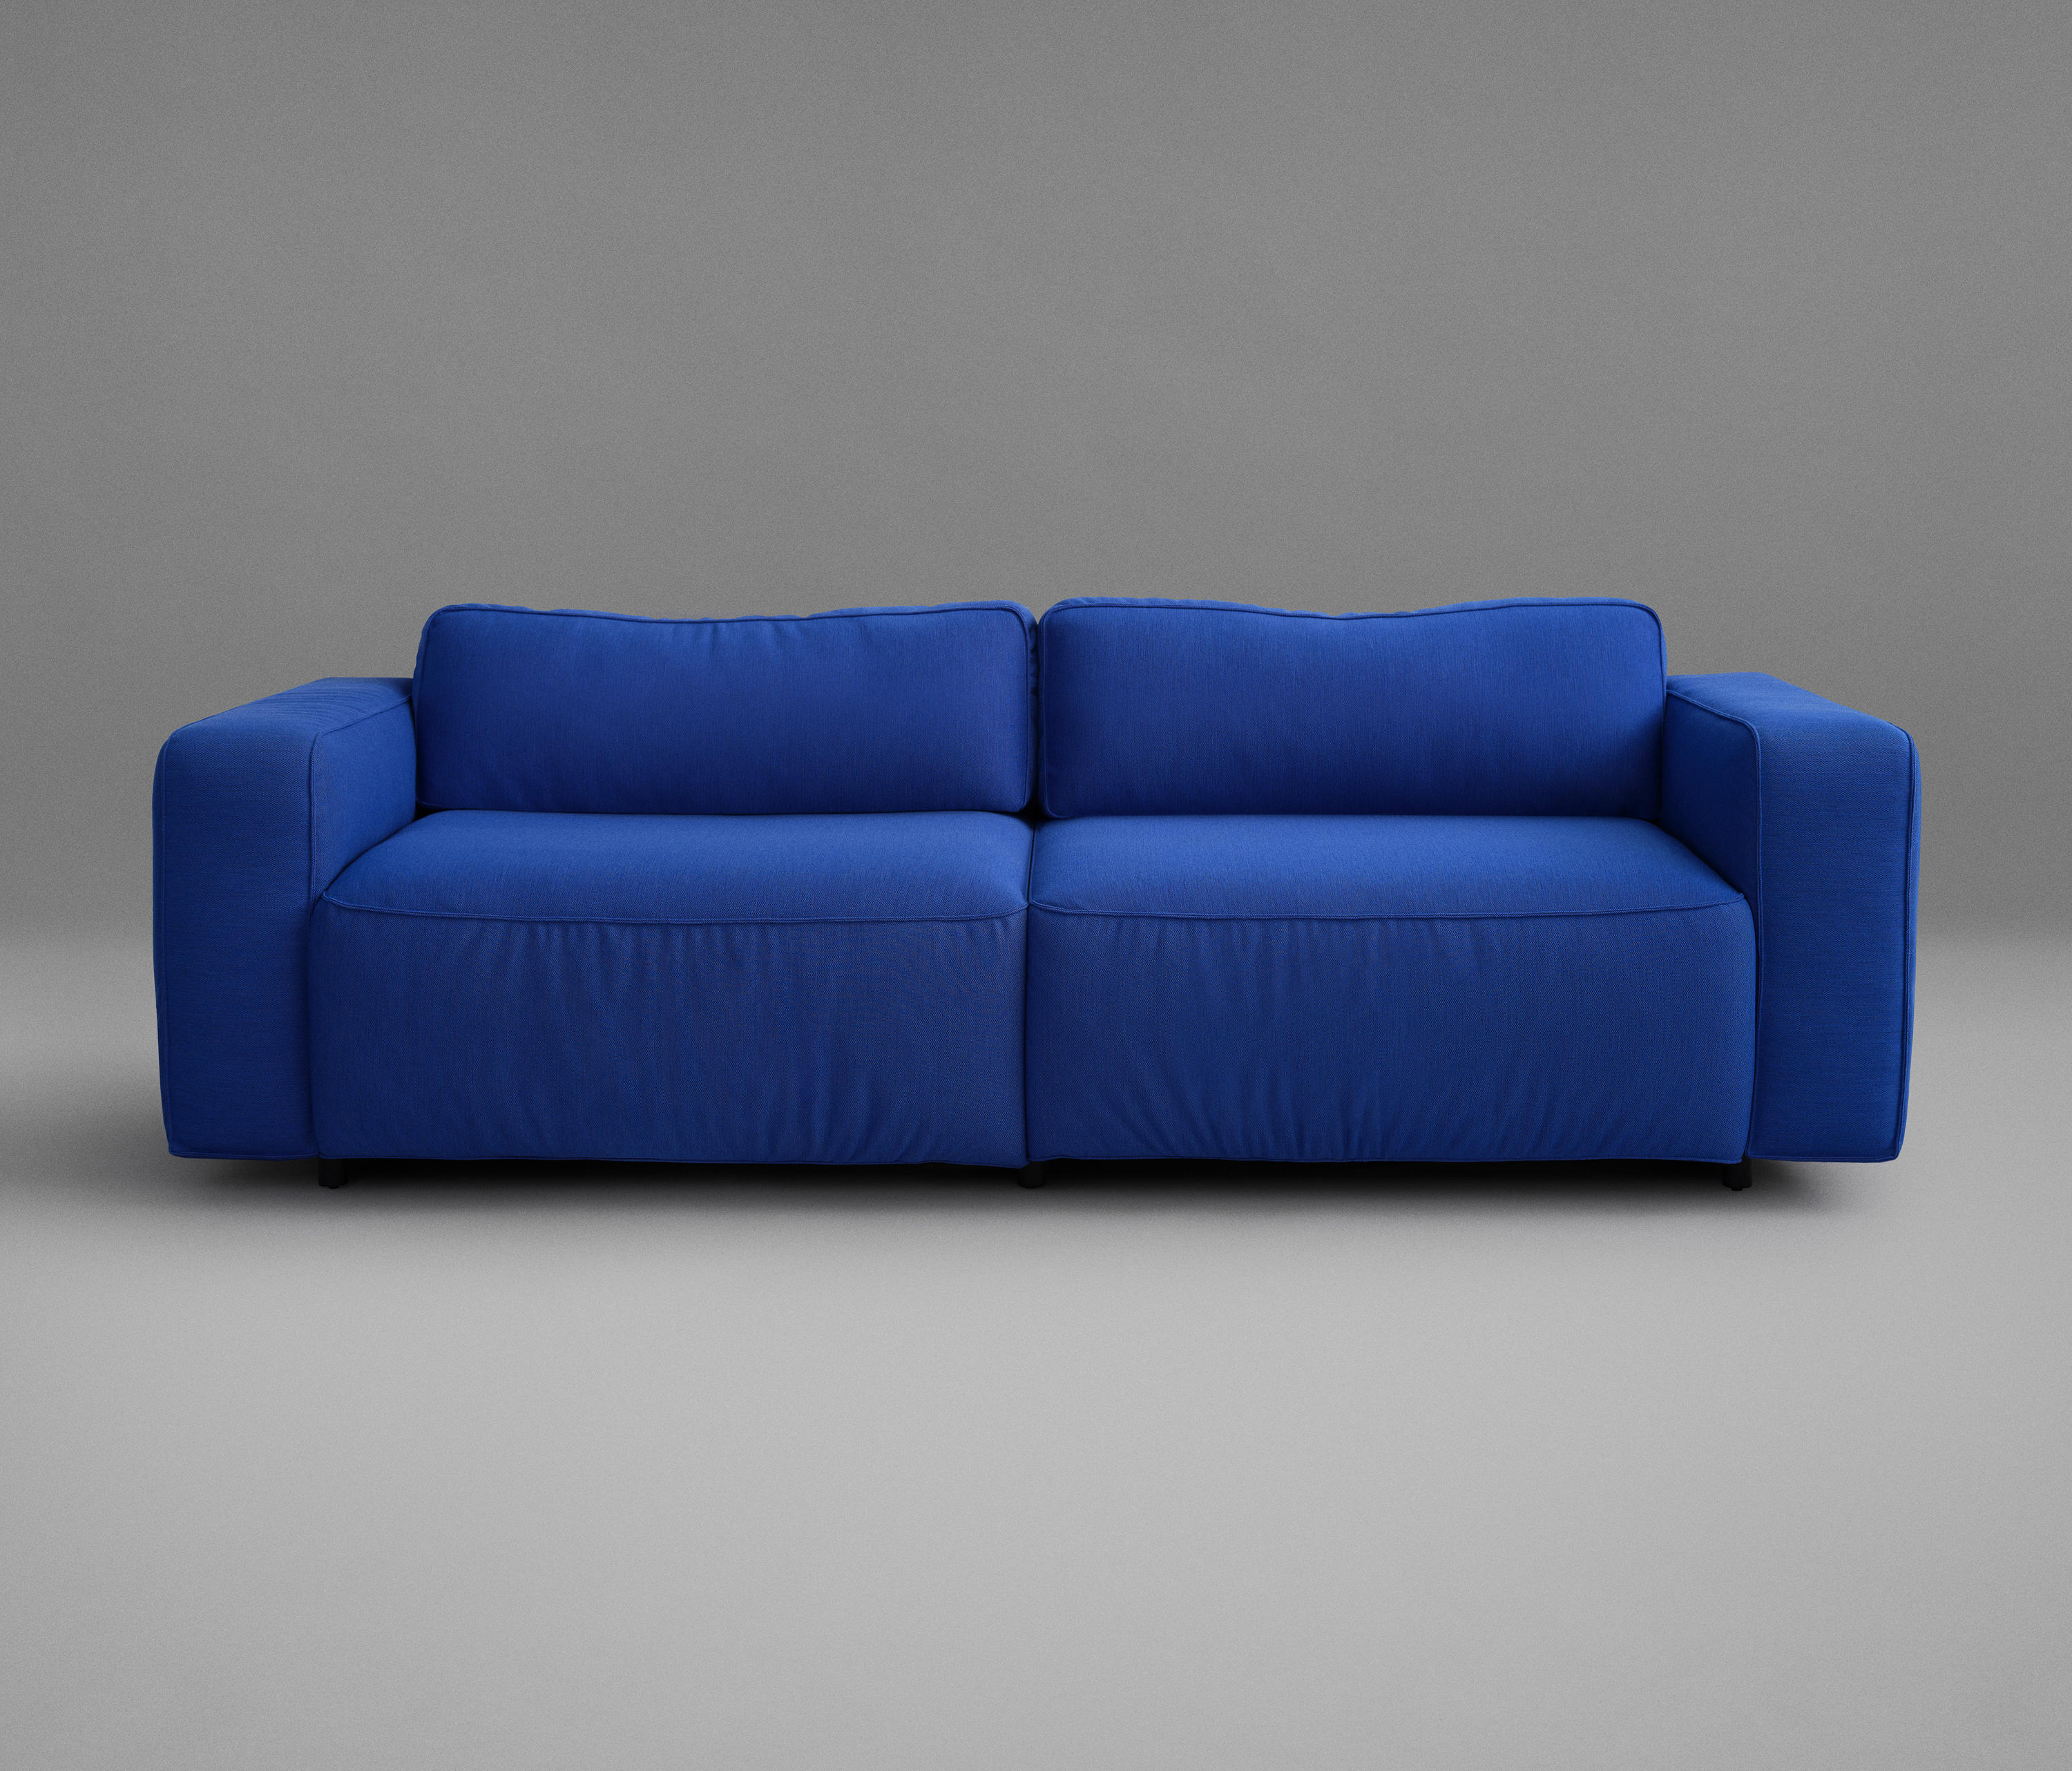 Supersoft Sofas From Fogia Architonic